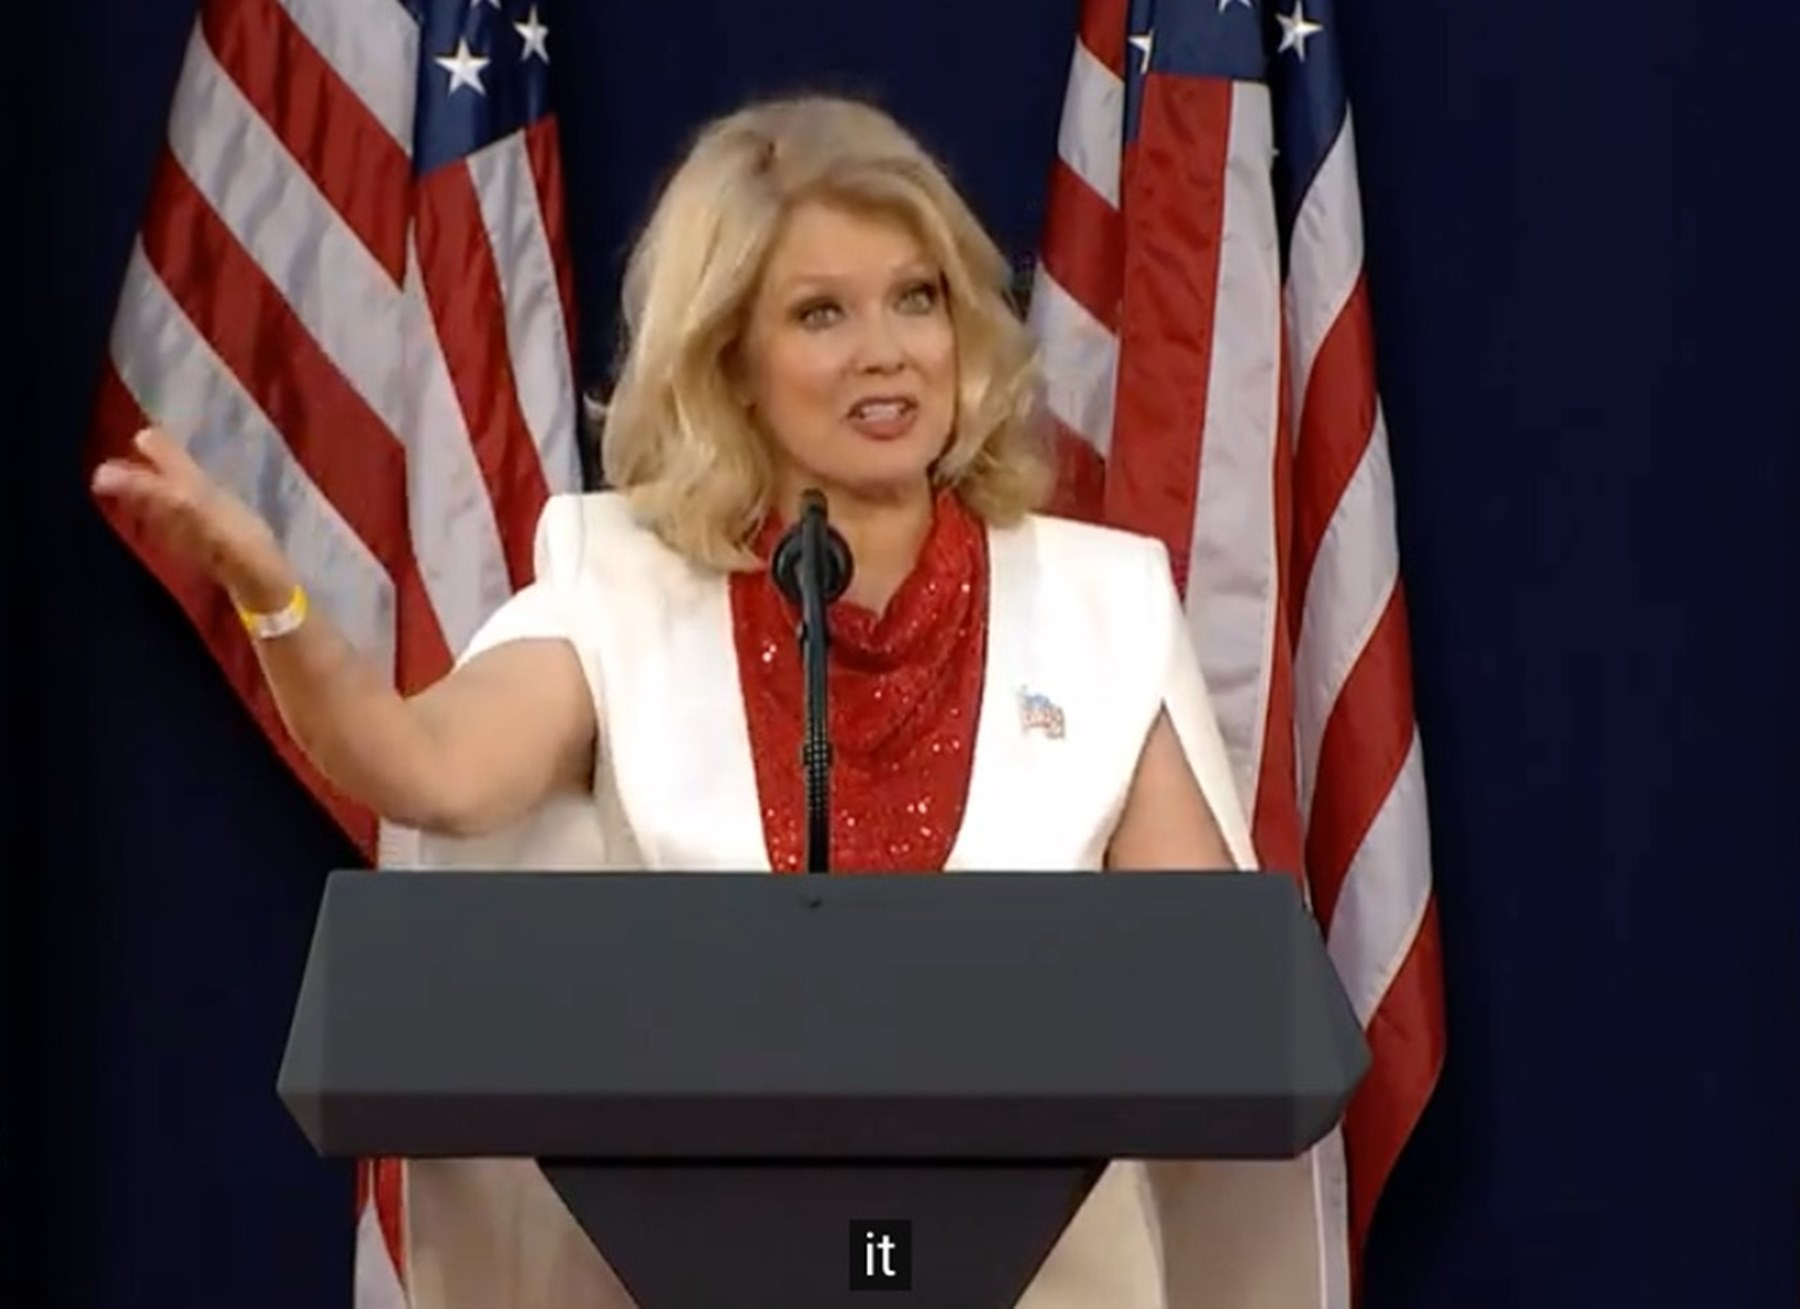 president-donald-trumps-mt-rushmore-rally-brings-out-mary-hart-as-a-maga-supporter-while-don-jr-s-girlfriend-kimberly-guilfoyle-tests-positive-for-covid-19